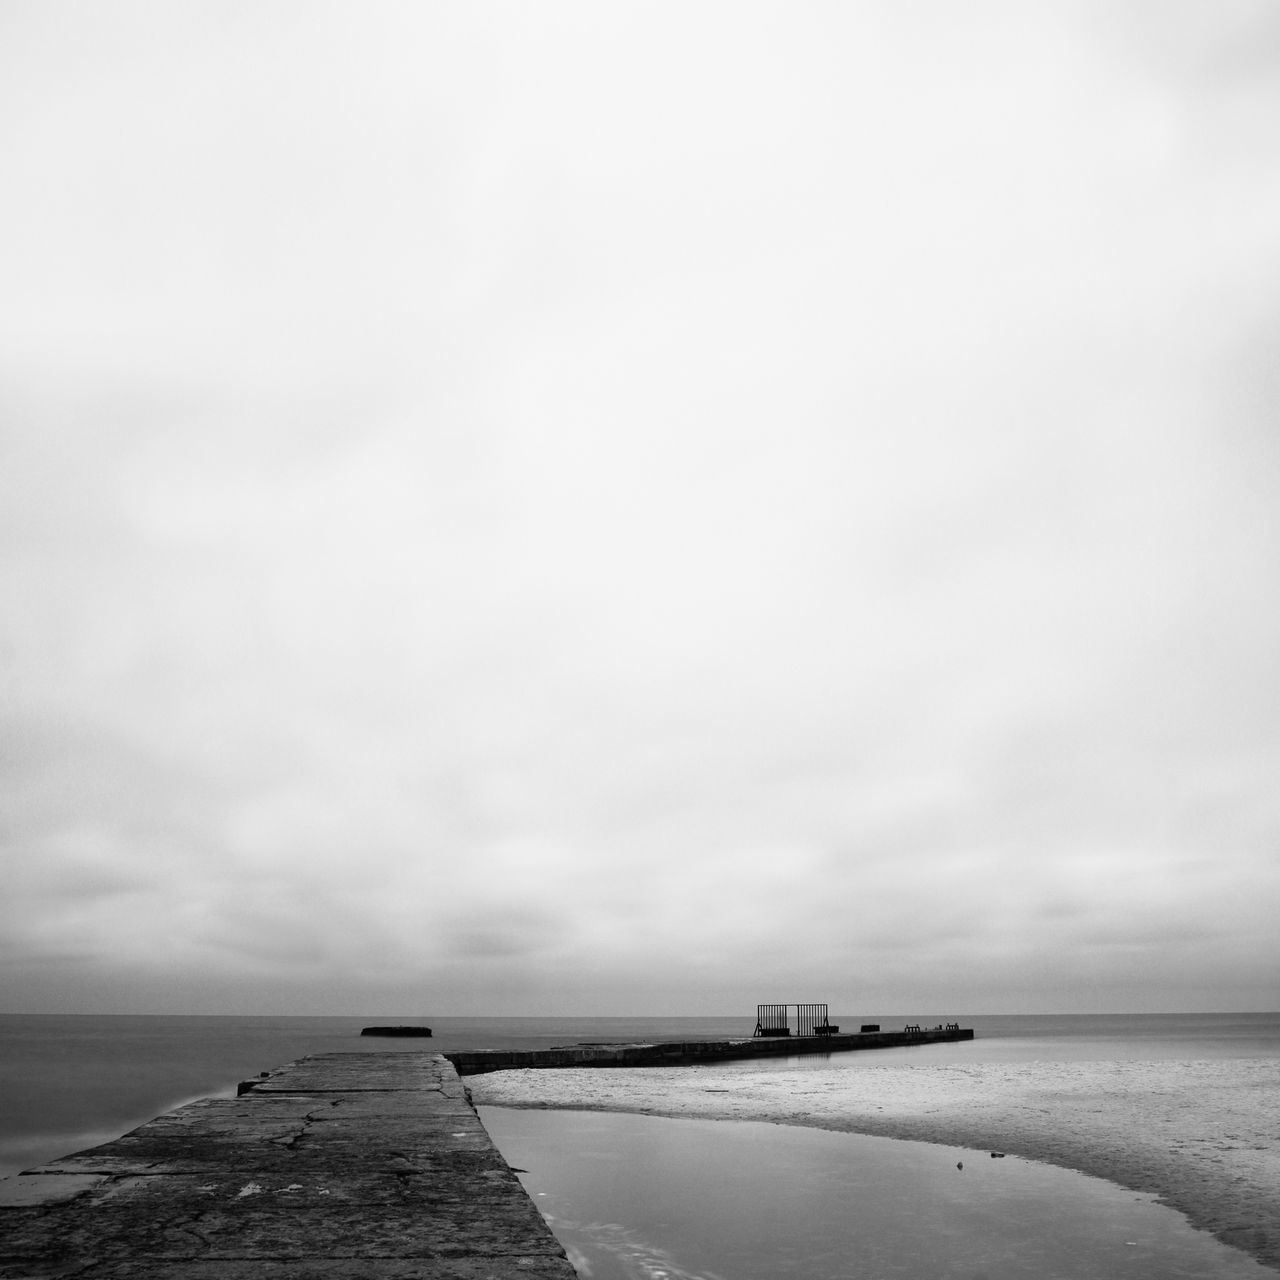 Pier By Sea Against Cloudy Sky